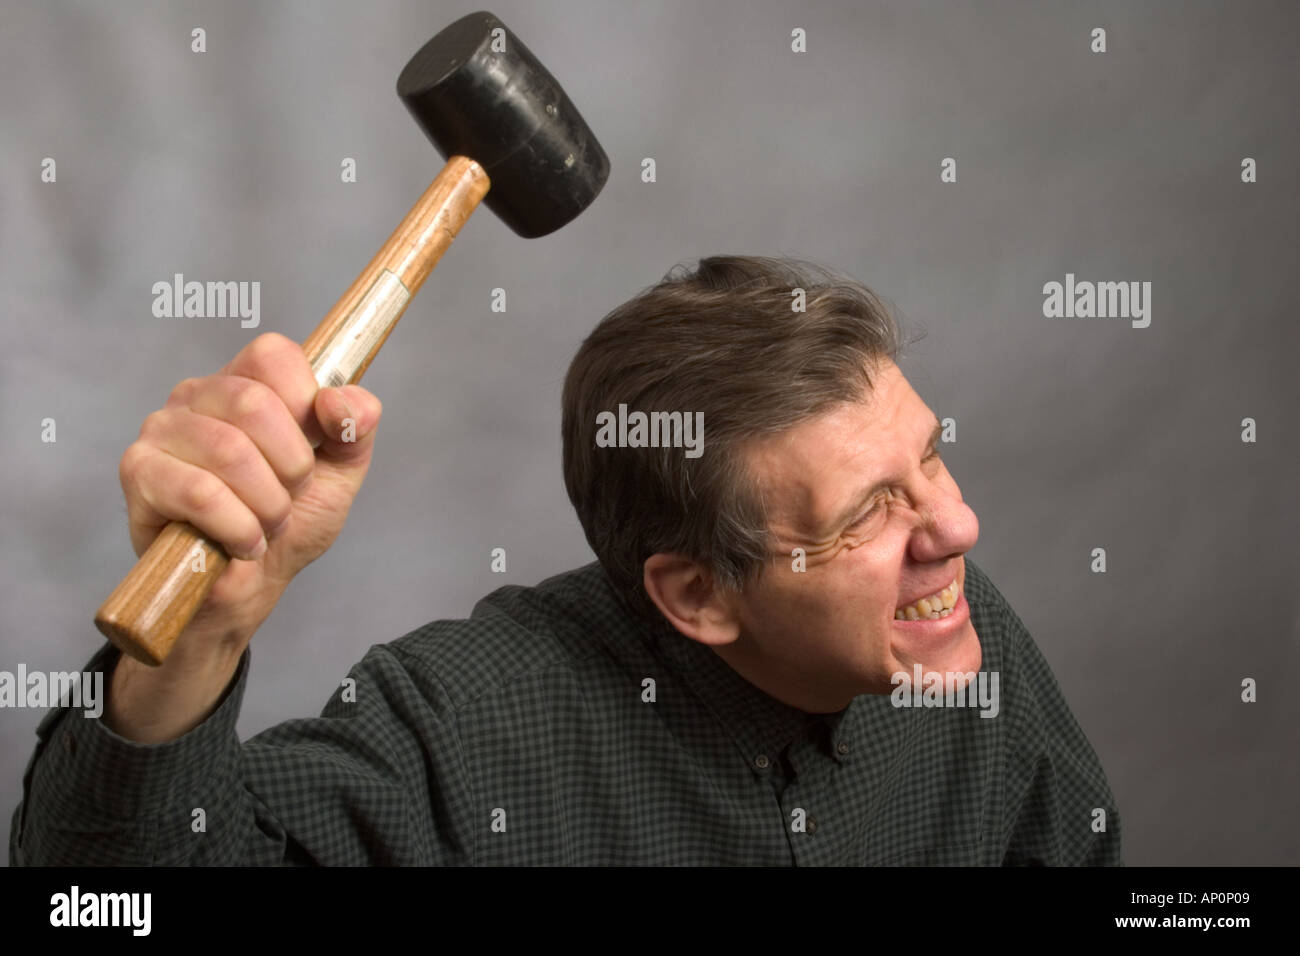 Man about to hit himself on the head with a hard rubber mallet Model  Released Stock Photo - Alamy